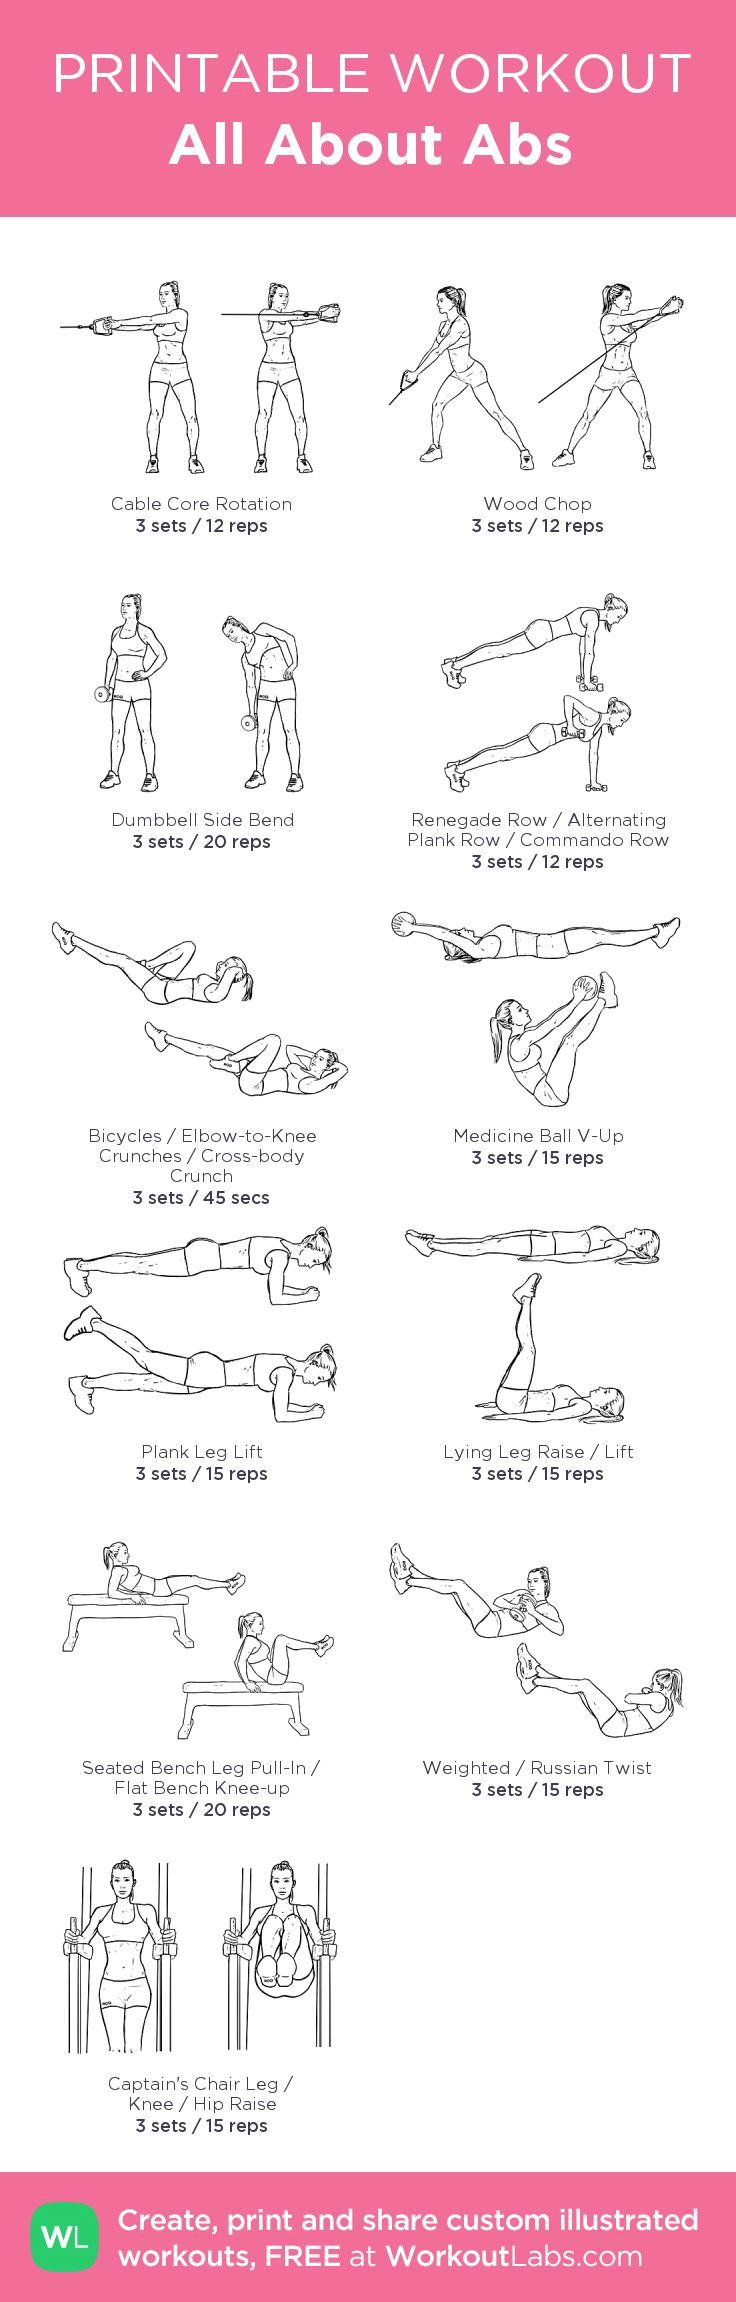 All About Abs: my visual workout created at WorkoutLabs.com • Click through to customize and download as a FREE PDF! #customworkout